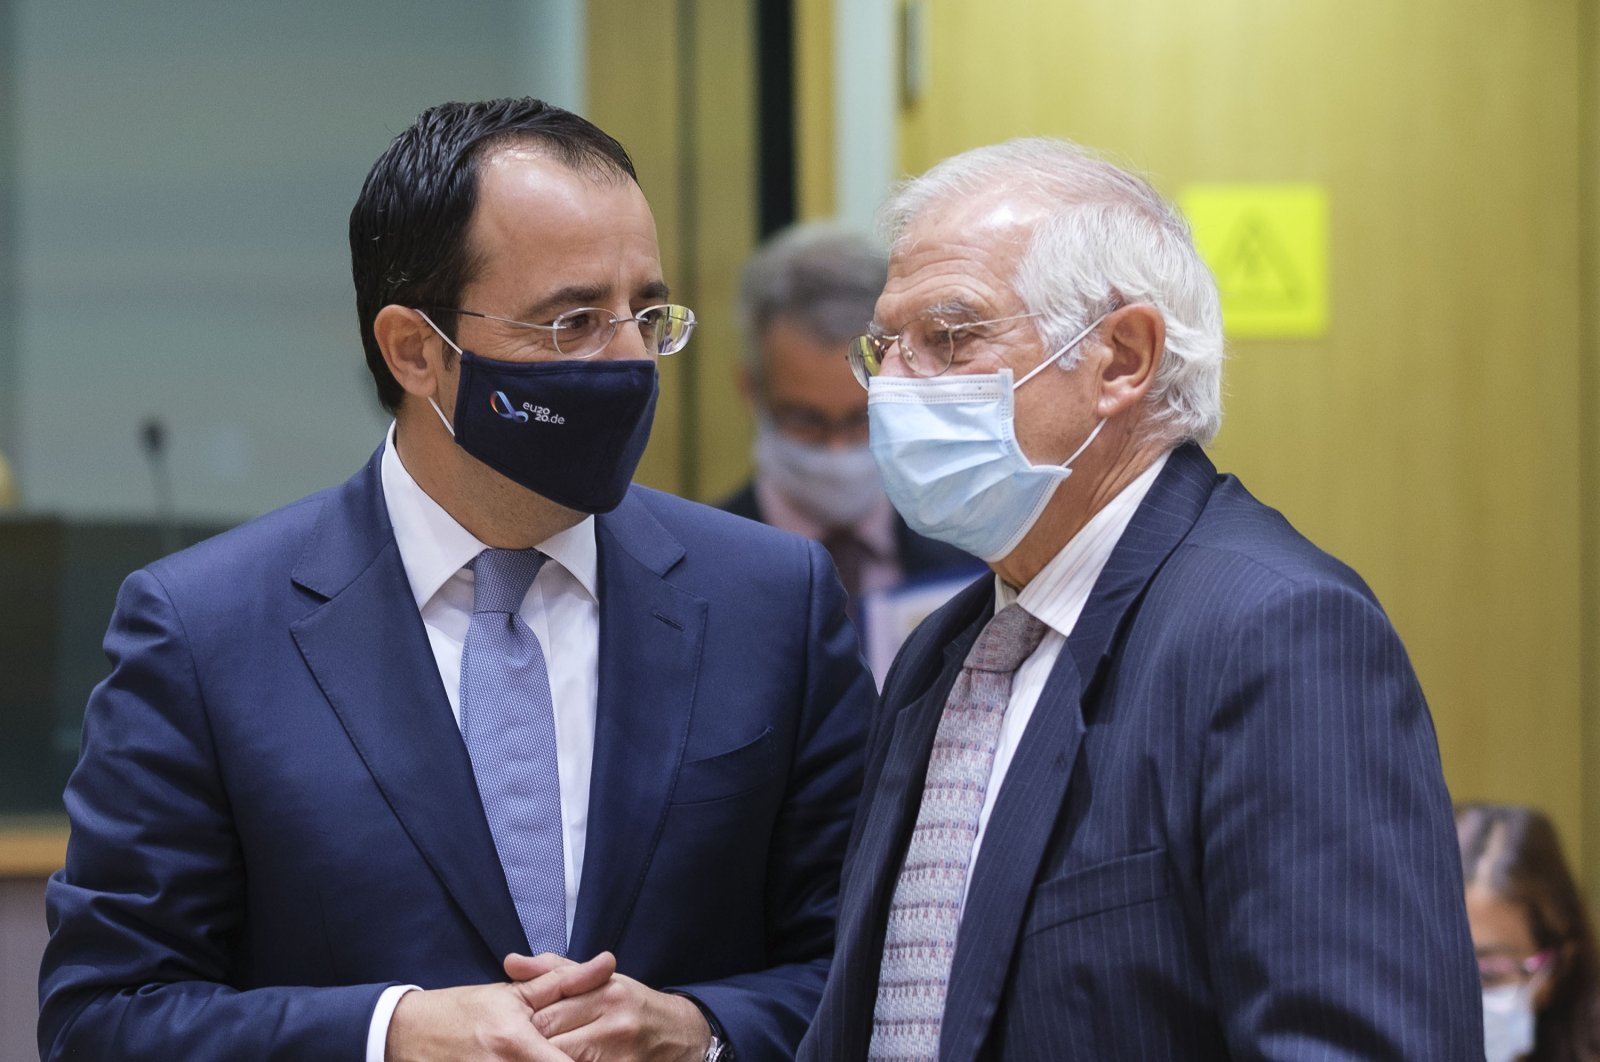 Greek Cypriot Minister of Foreign Affairs Nikos Christodoulides (L) talks with the European Union Commissioner for Foreign Affairs and Security Policy Josep Borrell prior to the EU Foreign Affairs Council in Brussels, Belgium, Sept. 21, 2020. (Getty Images)